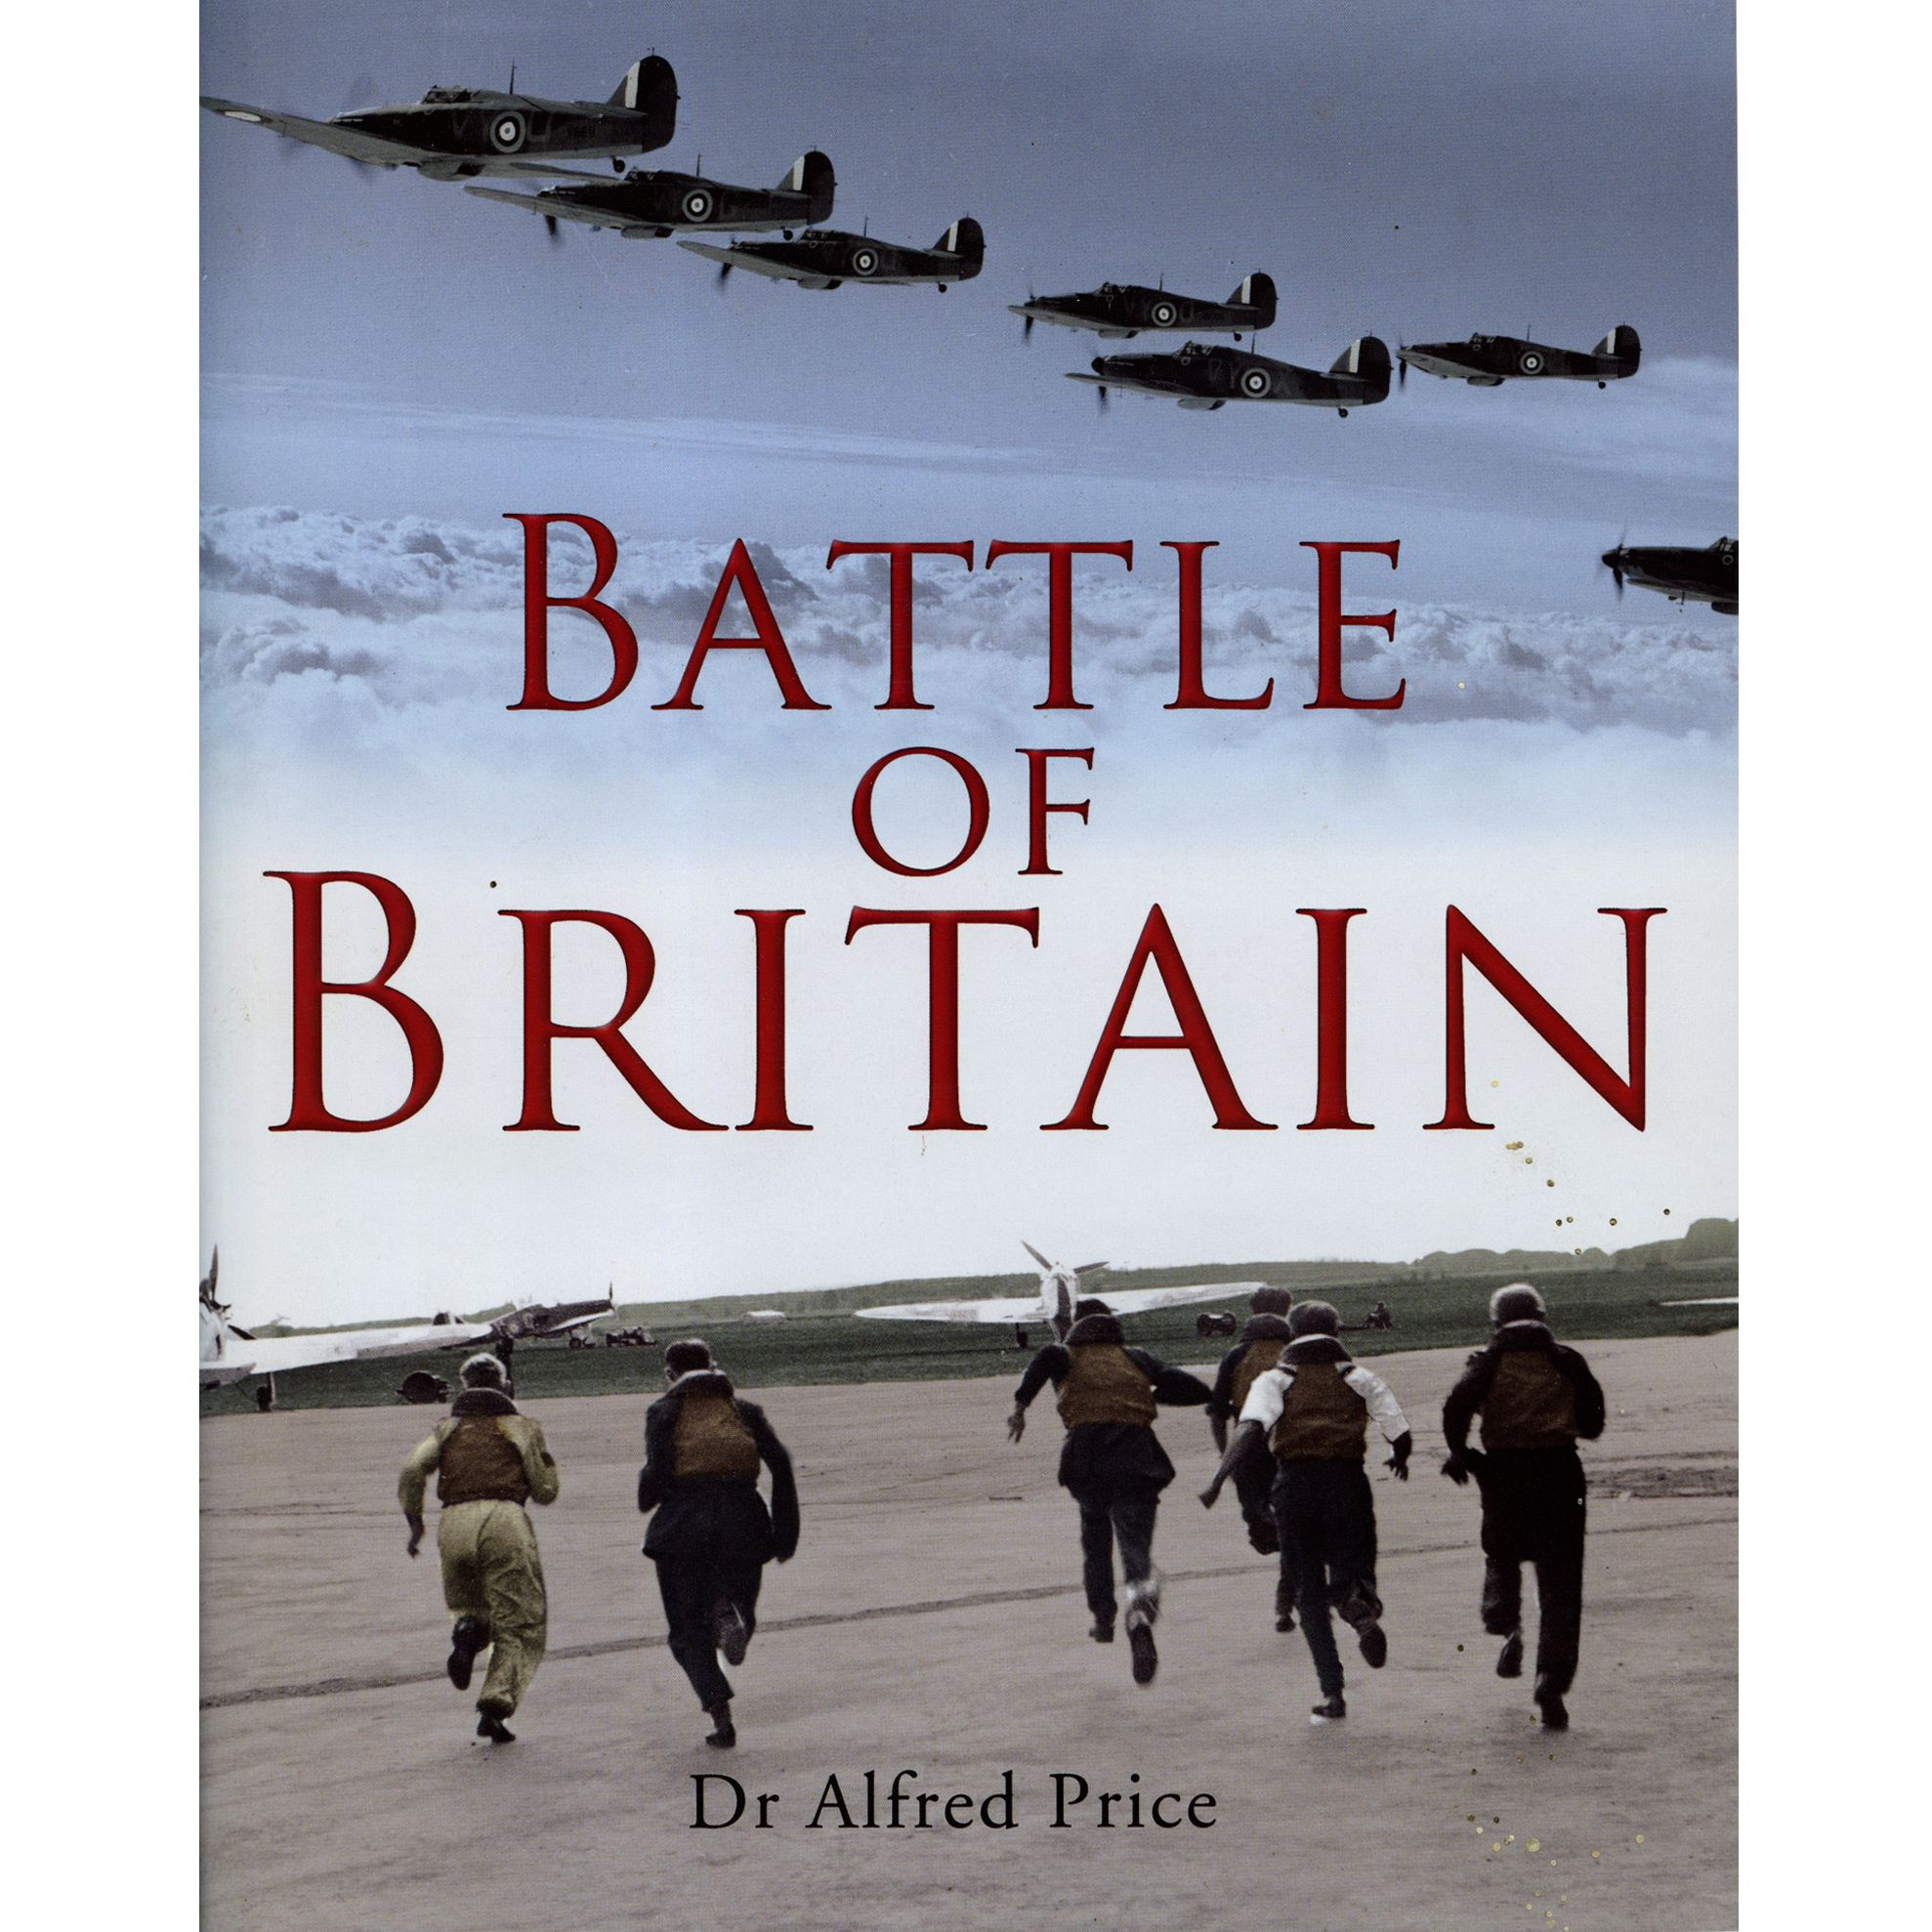 The Battle of Britain was a military campaign of the